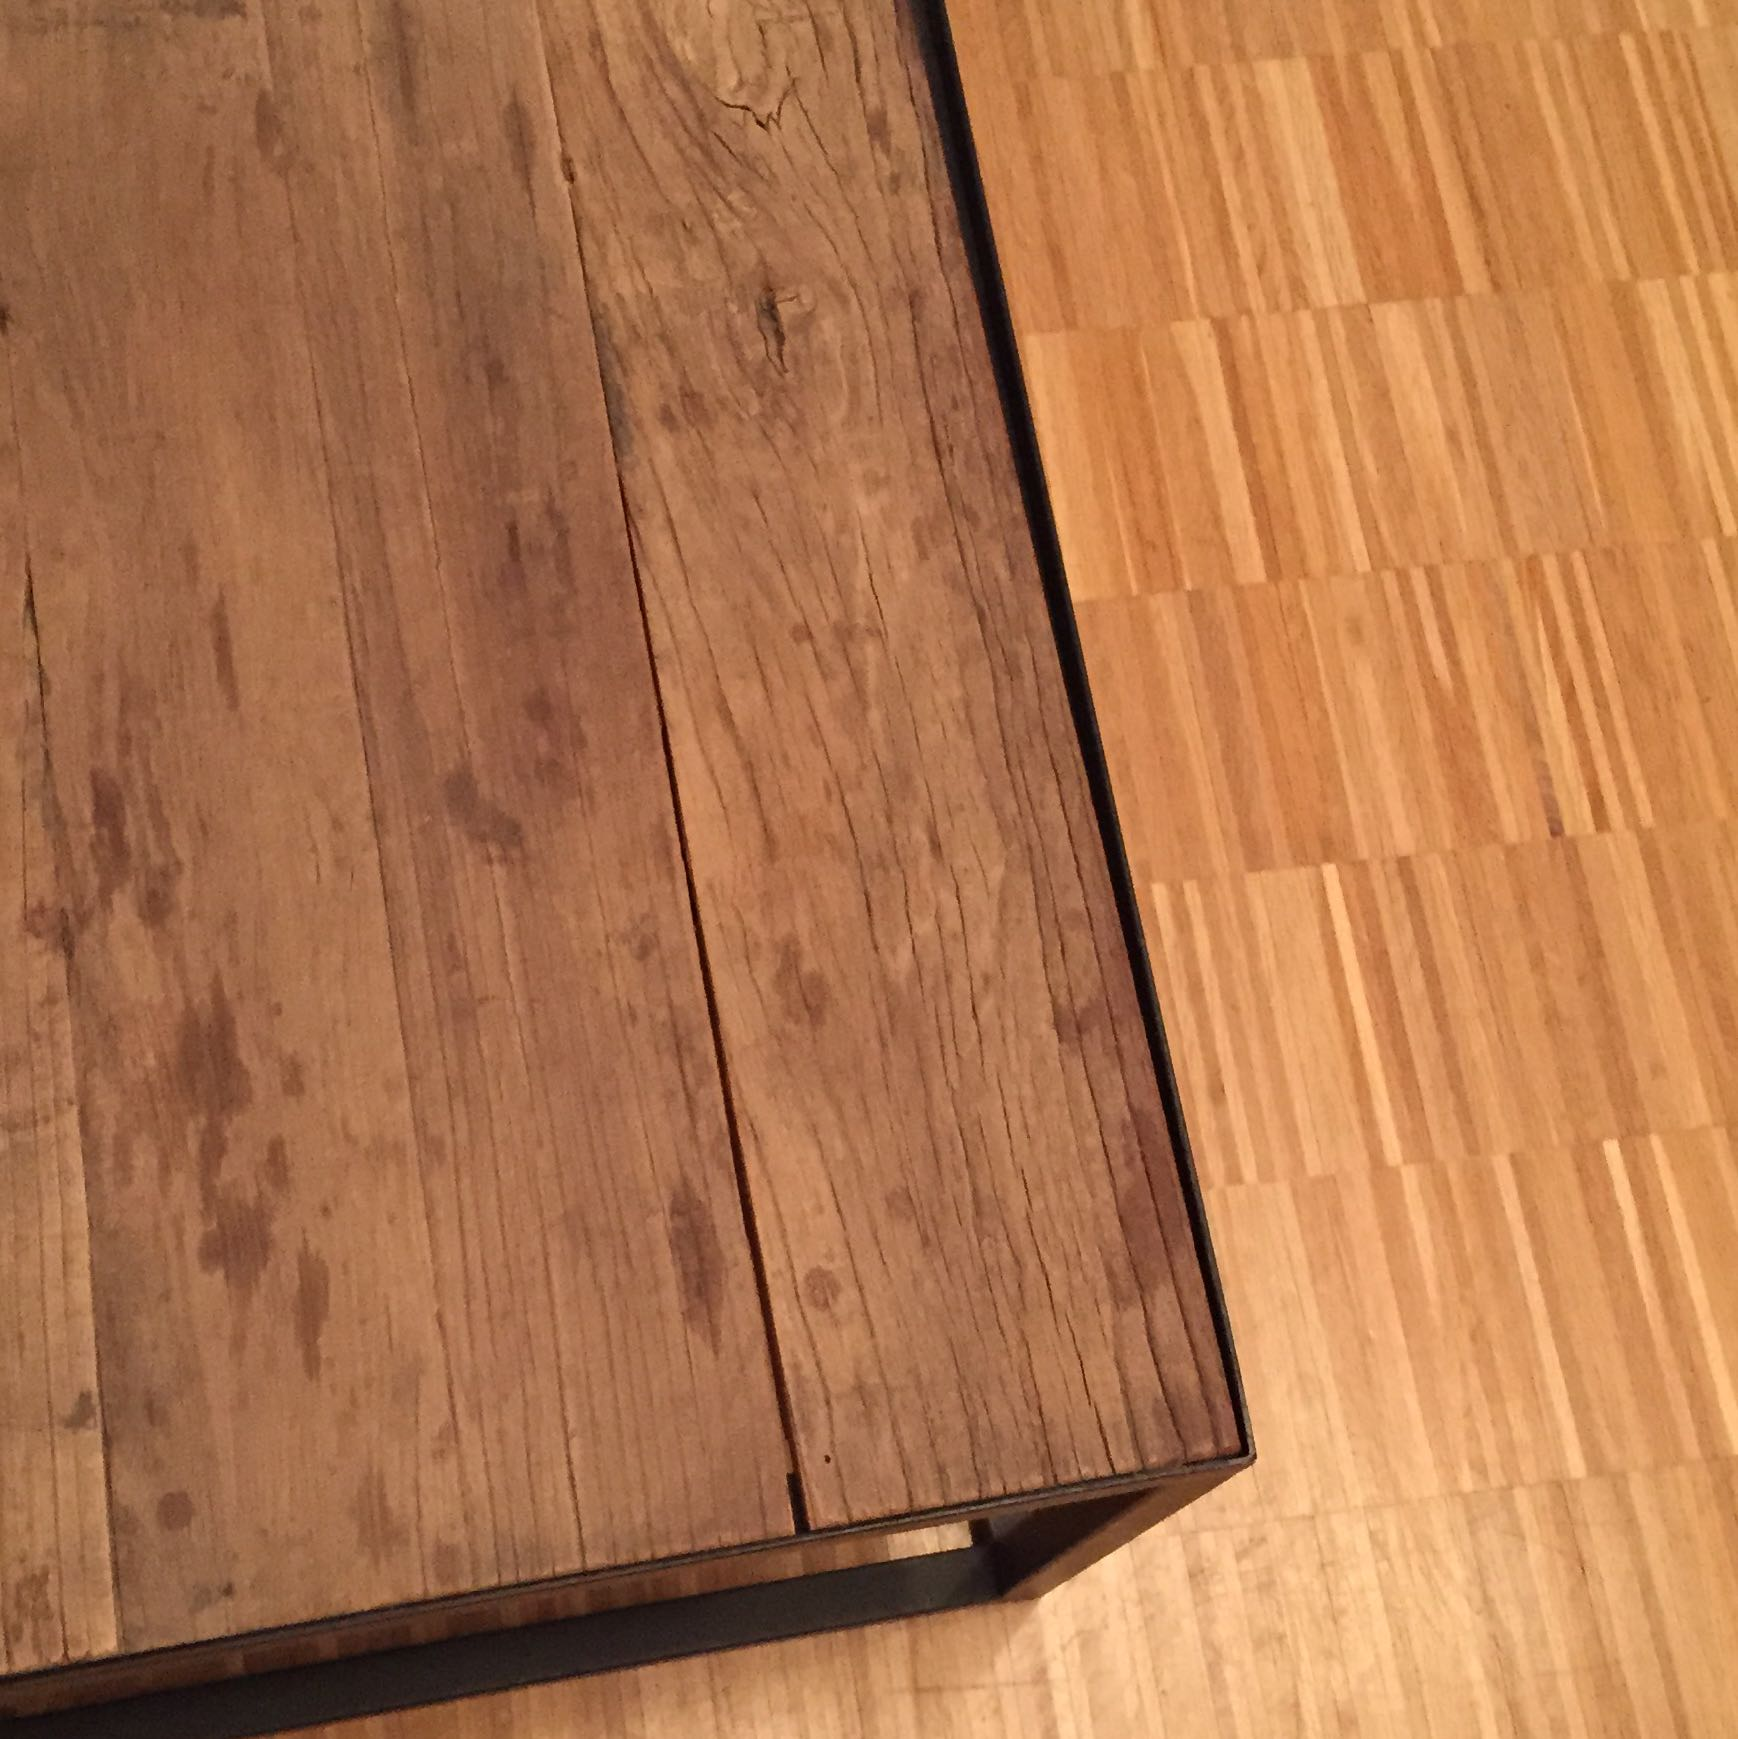 rat holz m bel f rben wohnung farbe l. Black Bedroom Furniture Sets. Home Design Ideas